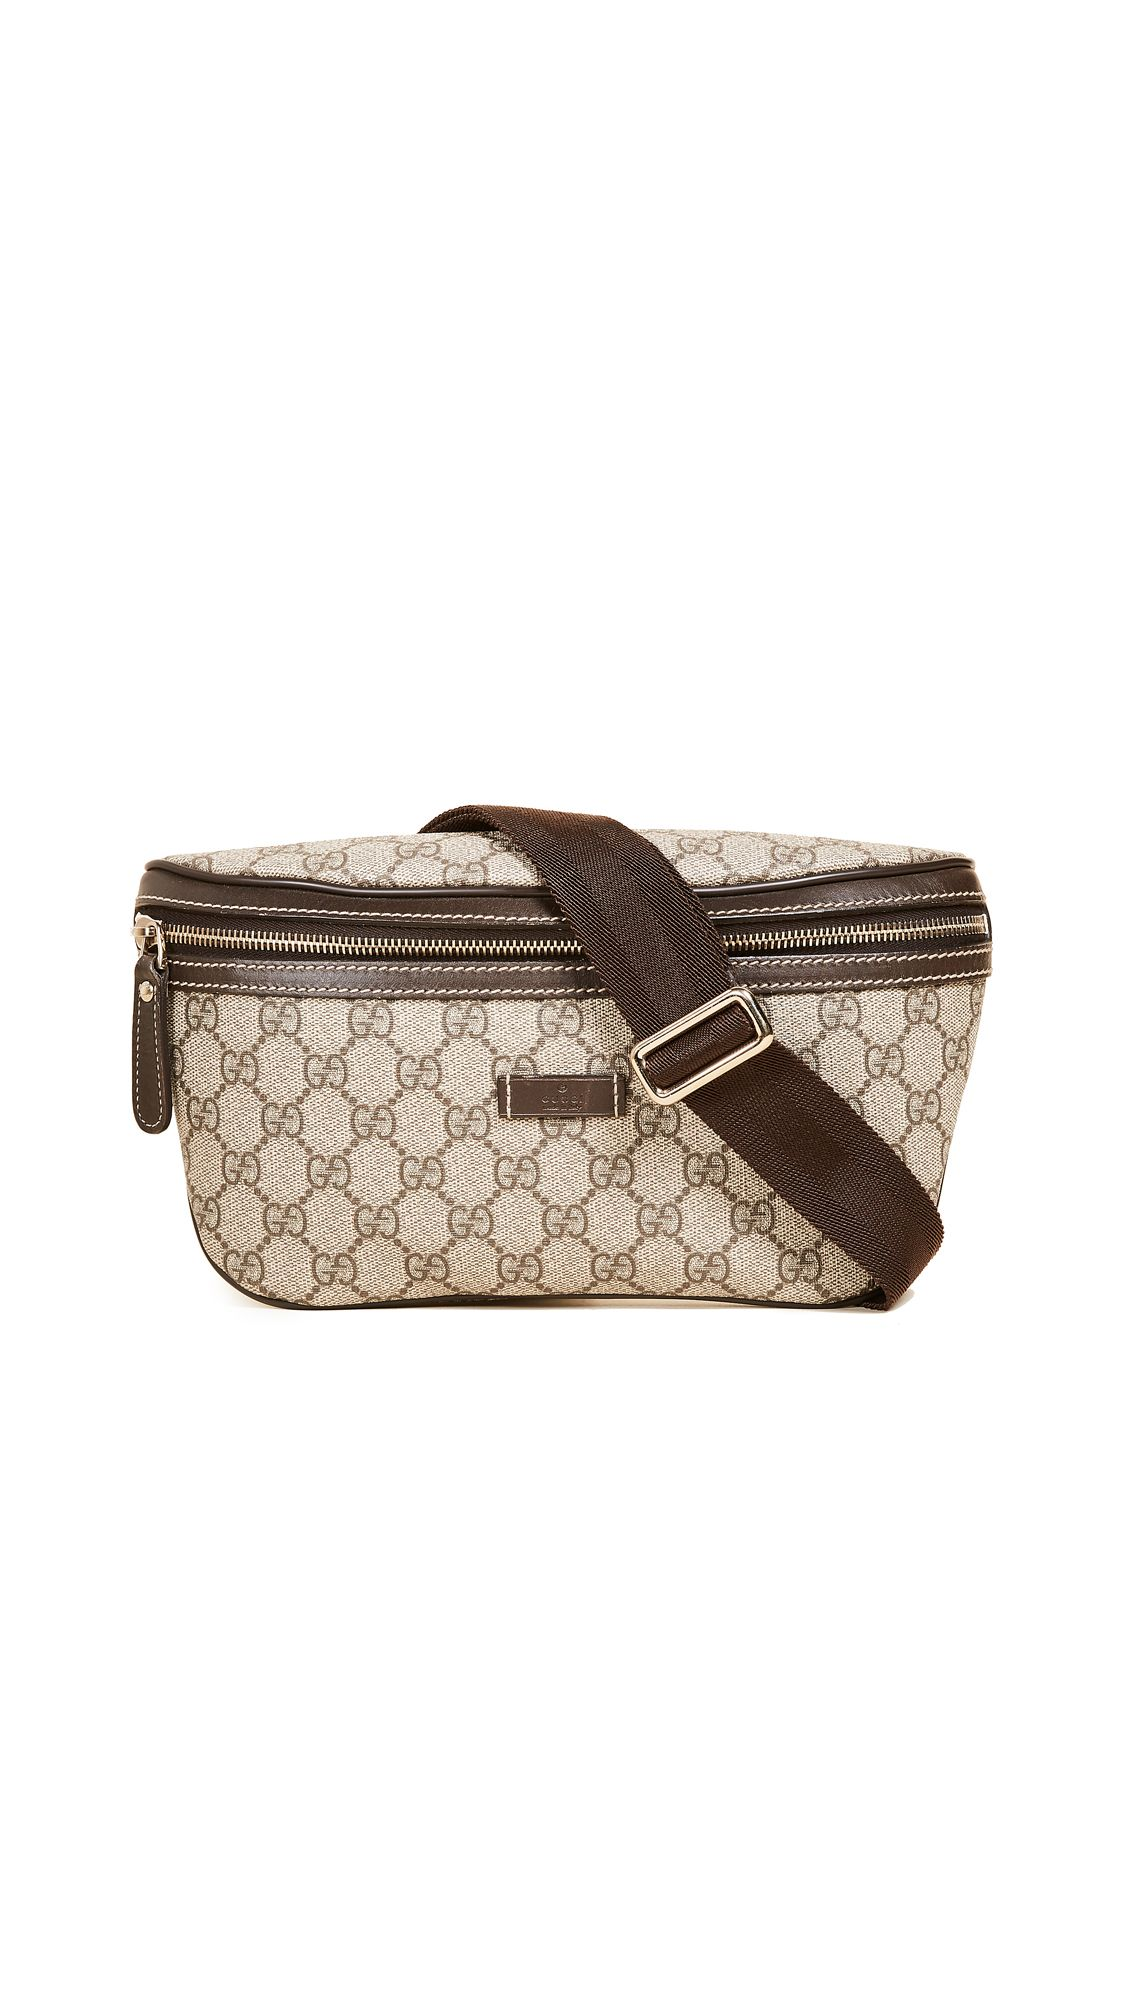 5d722bd81167 WHAT GOES AROUND COMES AROUND GUCCI CANVAS WAIST POUCH (PREVIOUSLY OWNED).  #whatgoesaroundcomesaround #